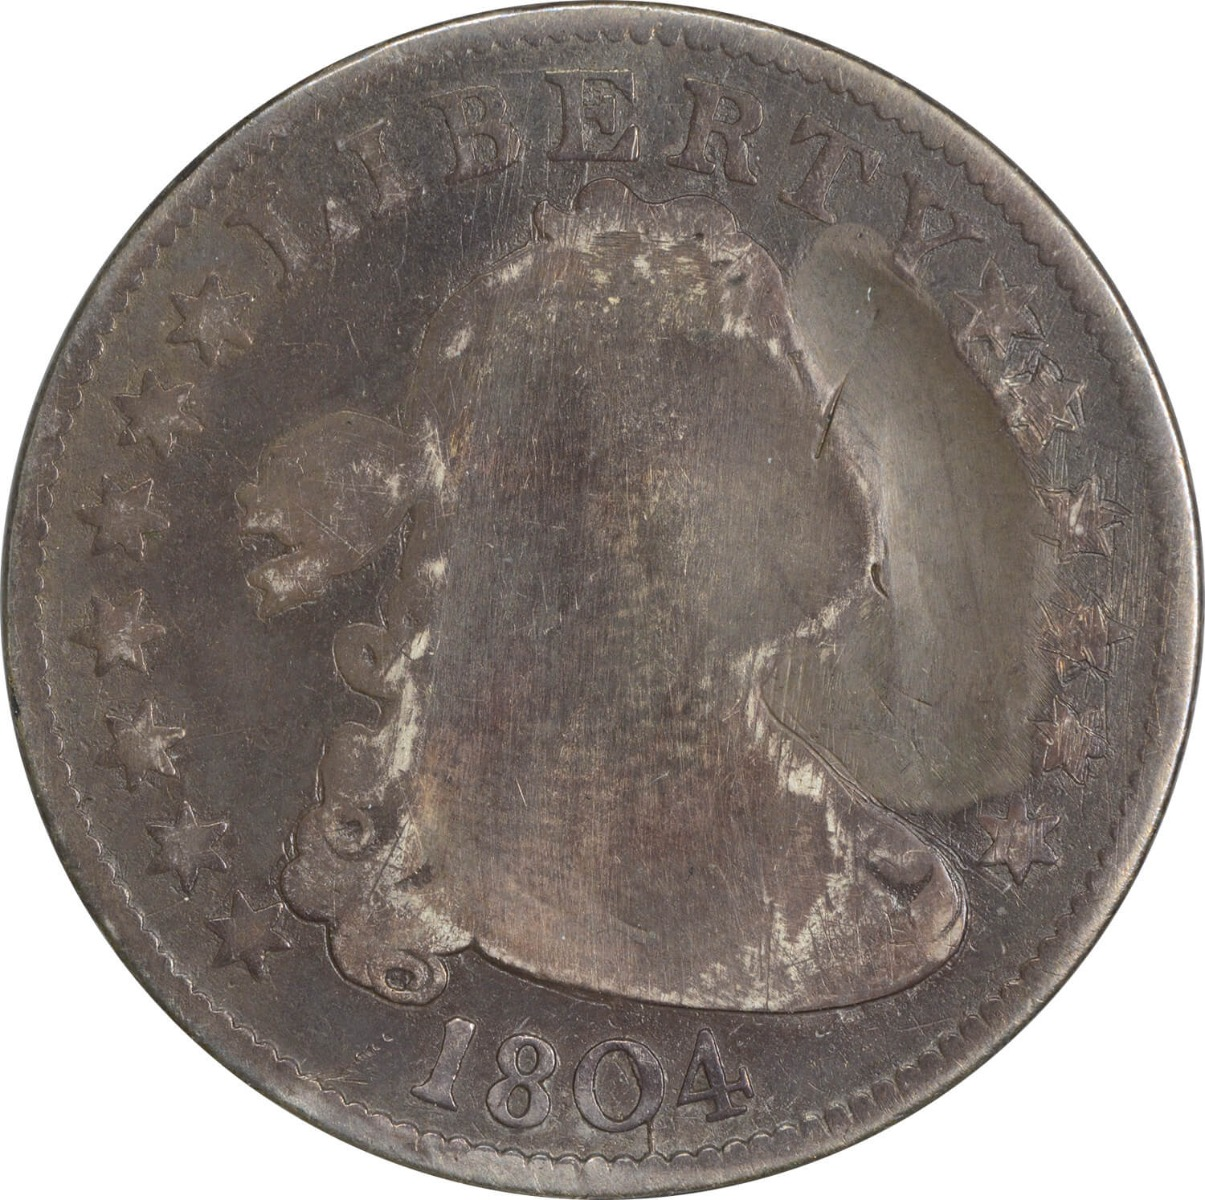 1804 Bust Quarter, F/G (Repaired), Uncertified